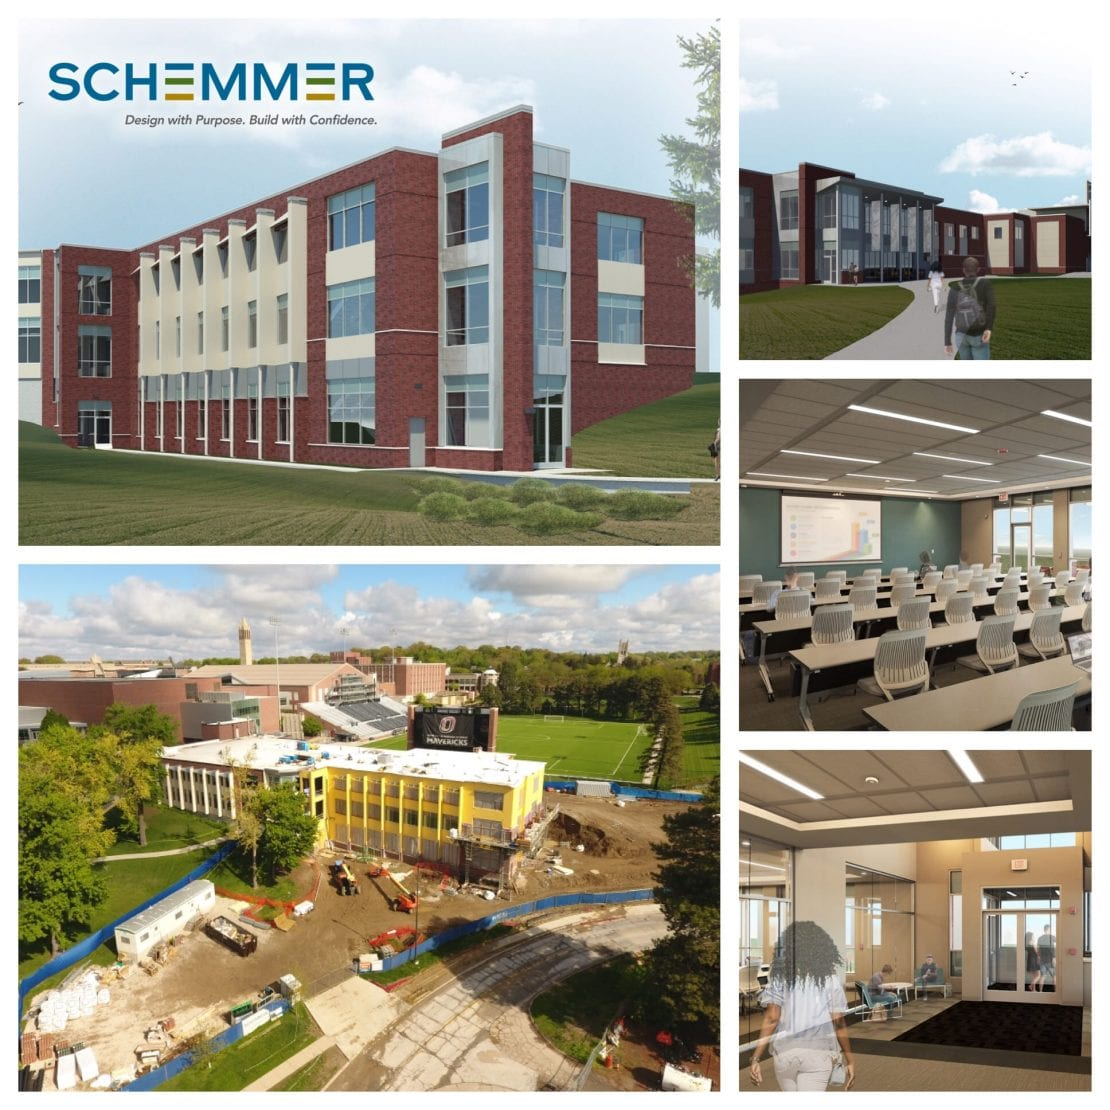 Schemmer Biomechanics Research Addition Omaha, Lincoln, Des Moines